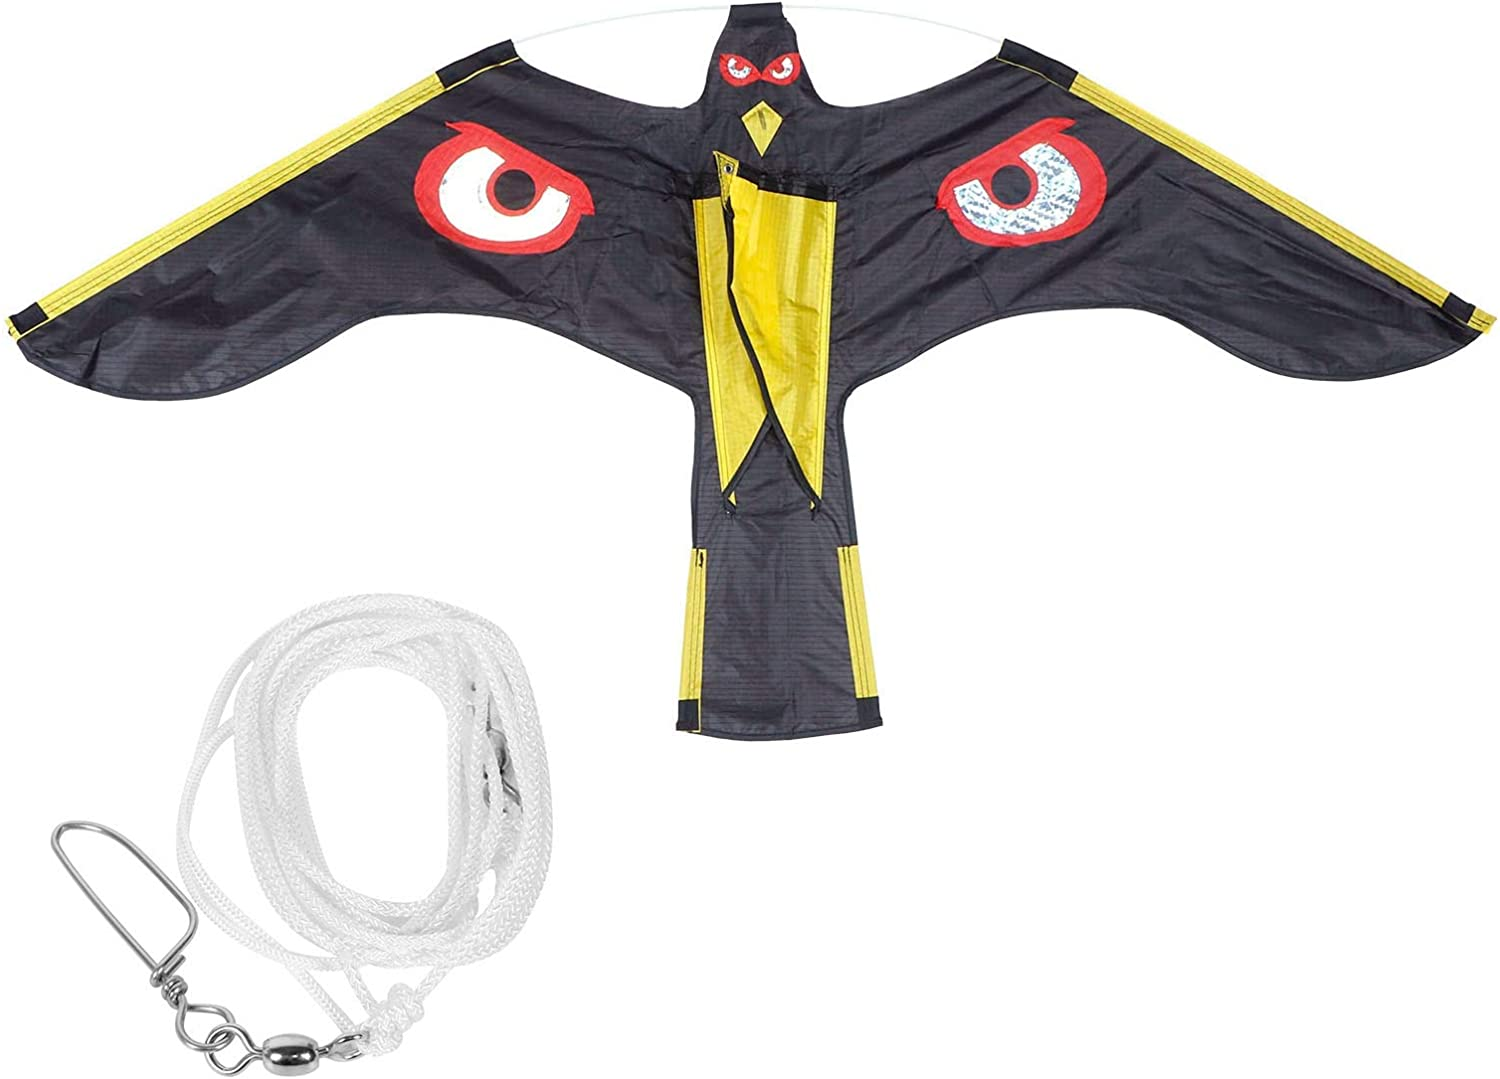 Haowecib Cash special price Bird Scarer Repeller Kite Farm for Mail order cheap Crops Protect